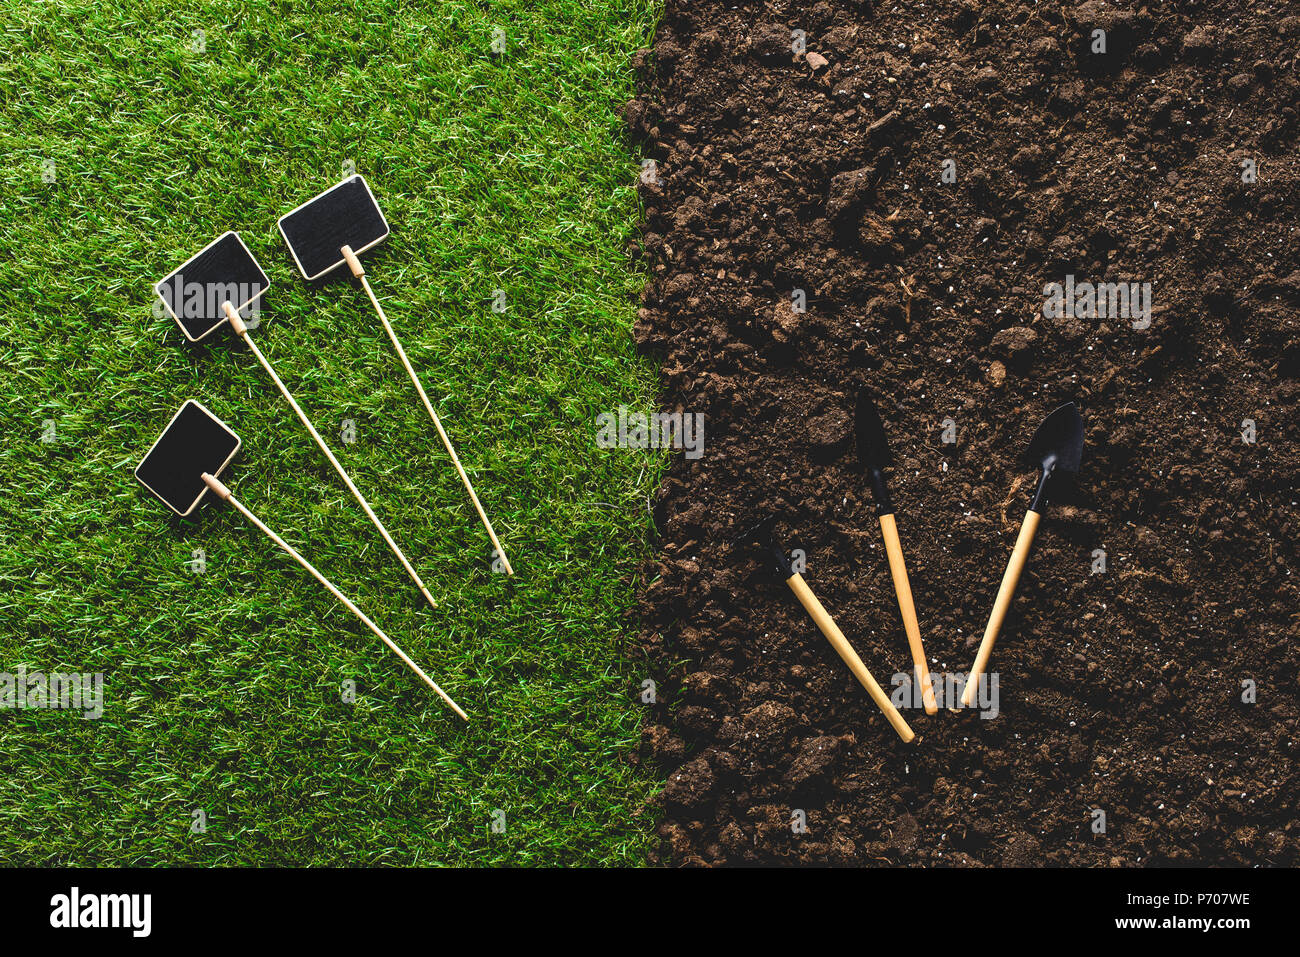 top view of empty blackboards on grass and gardening tools on soil - Stock Image